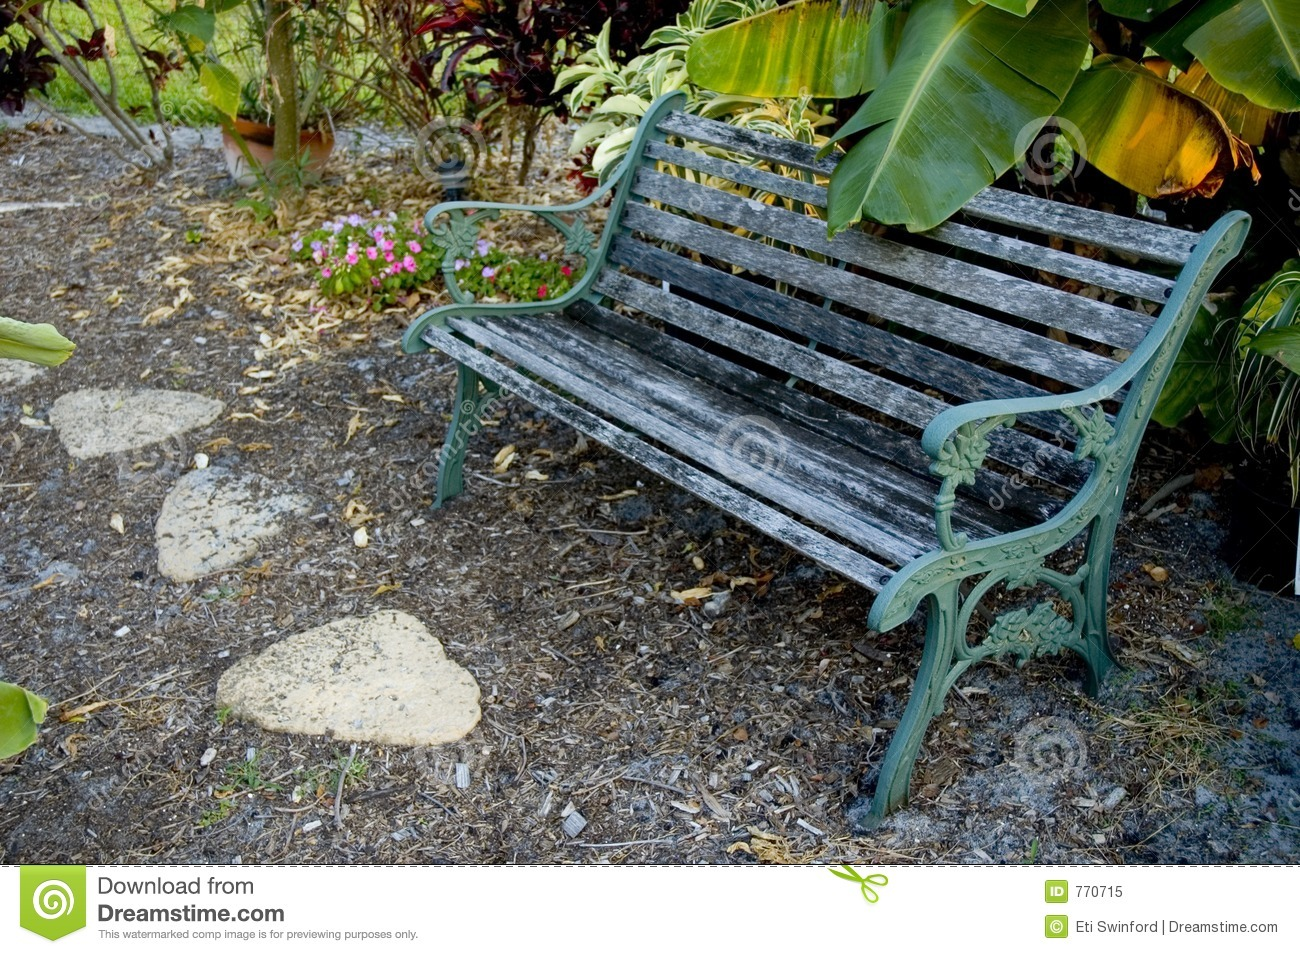 Banc de jardin photo libre de droits image 770715 for Banc en bois jardin